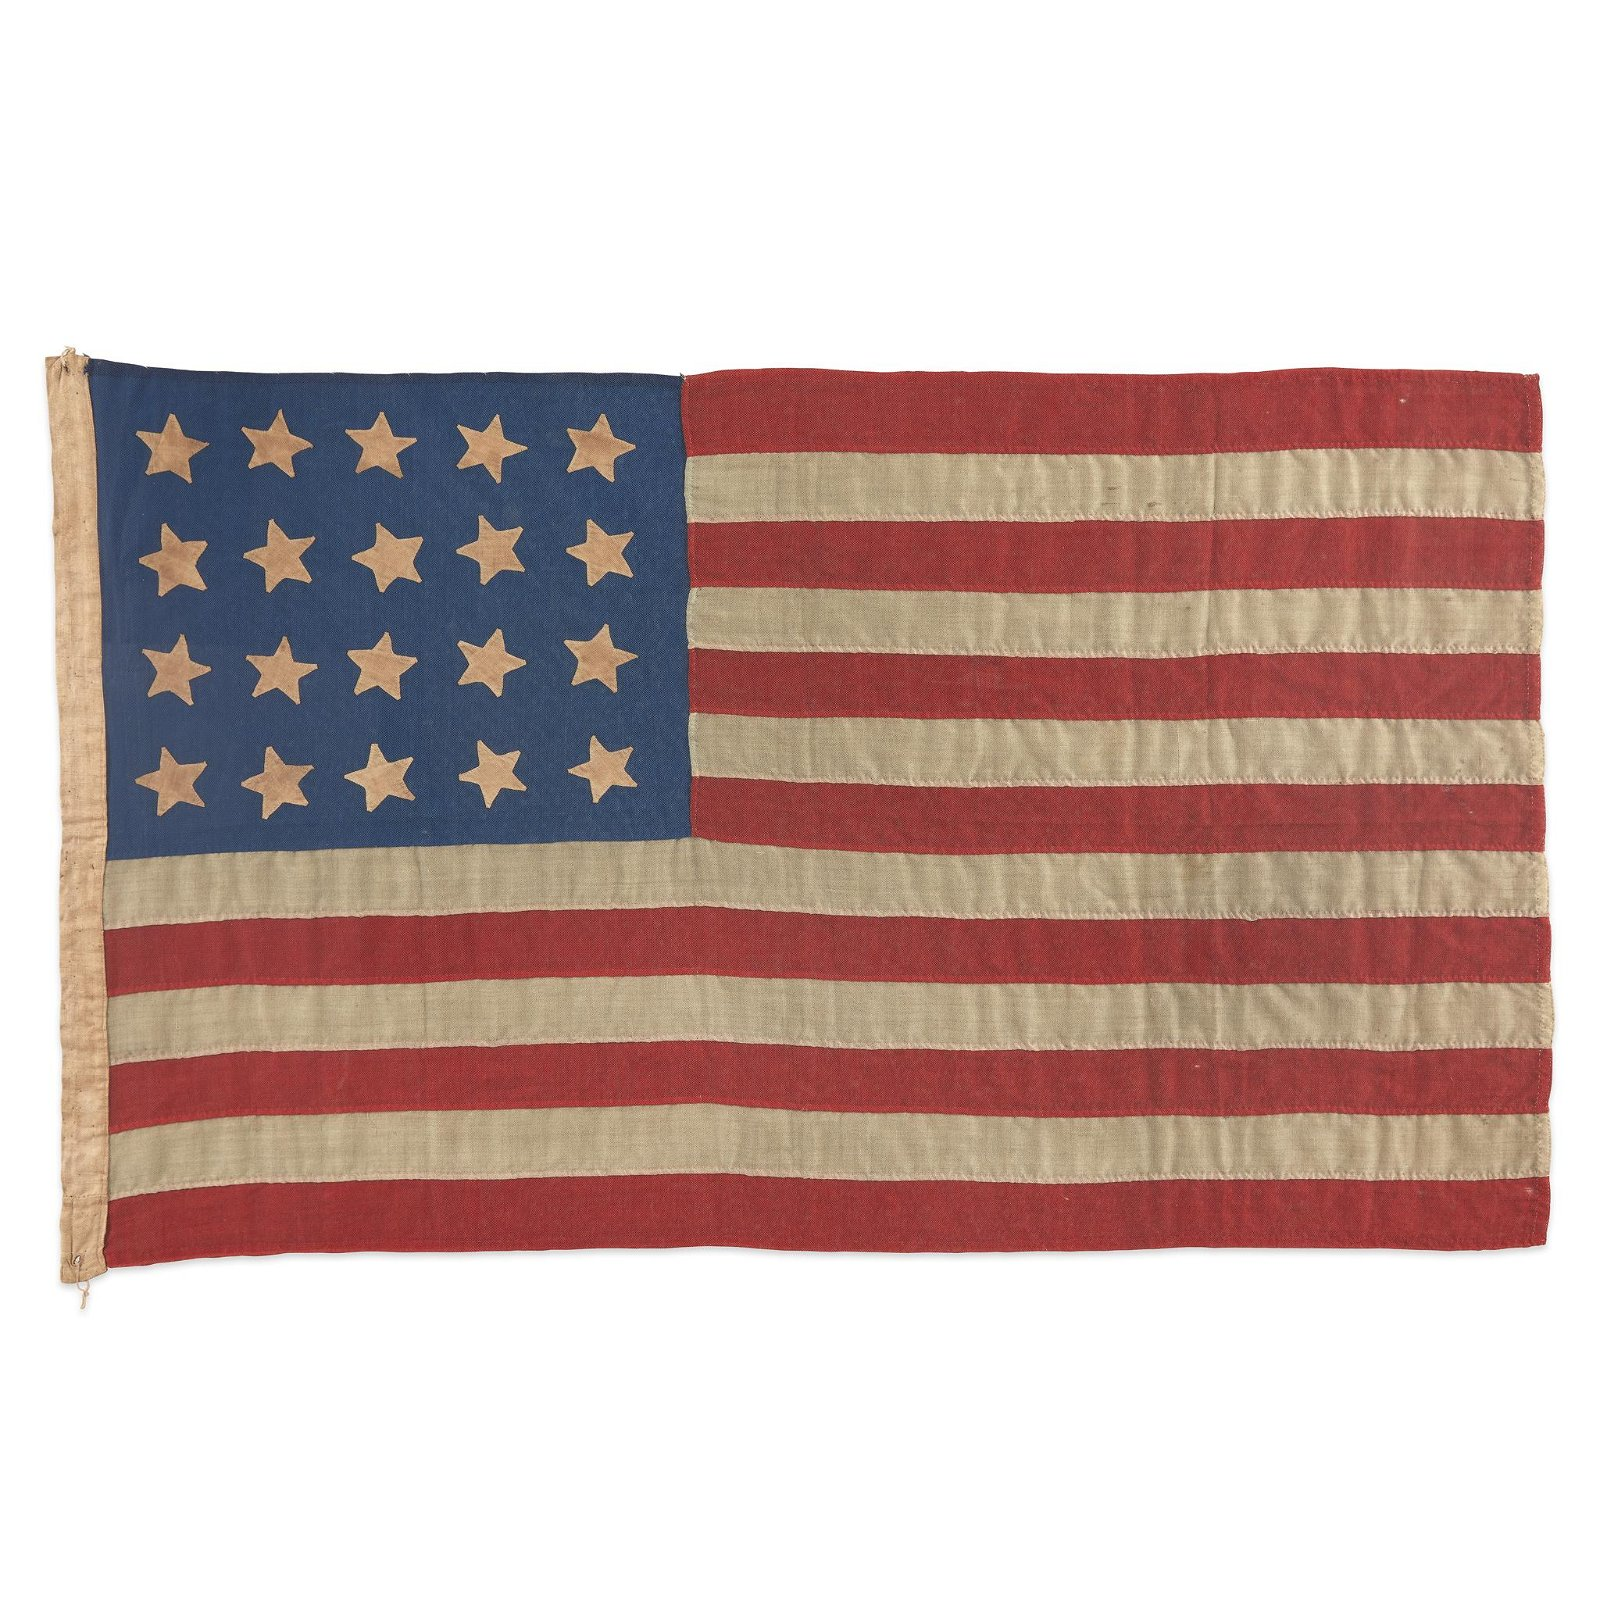 A 20-Star American Flag commemorating Mississippi